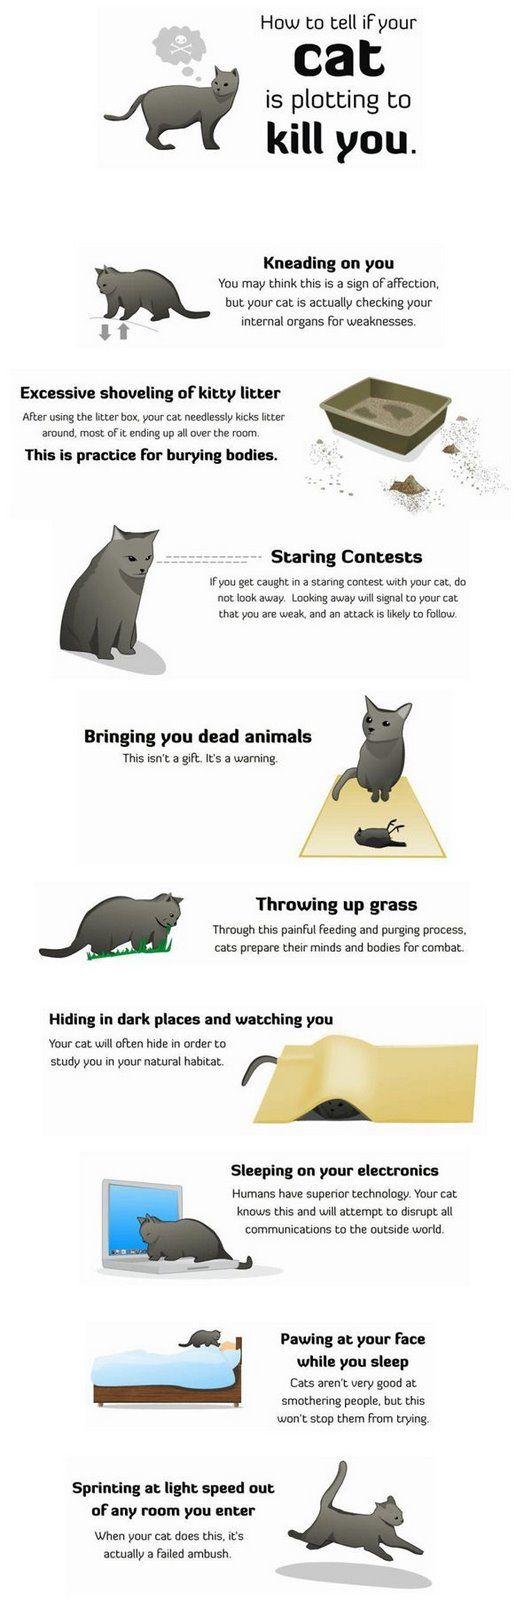 How to tell if your cat is plotting to kill you. Hmm...should I be worried?